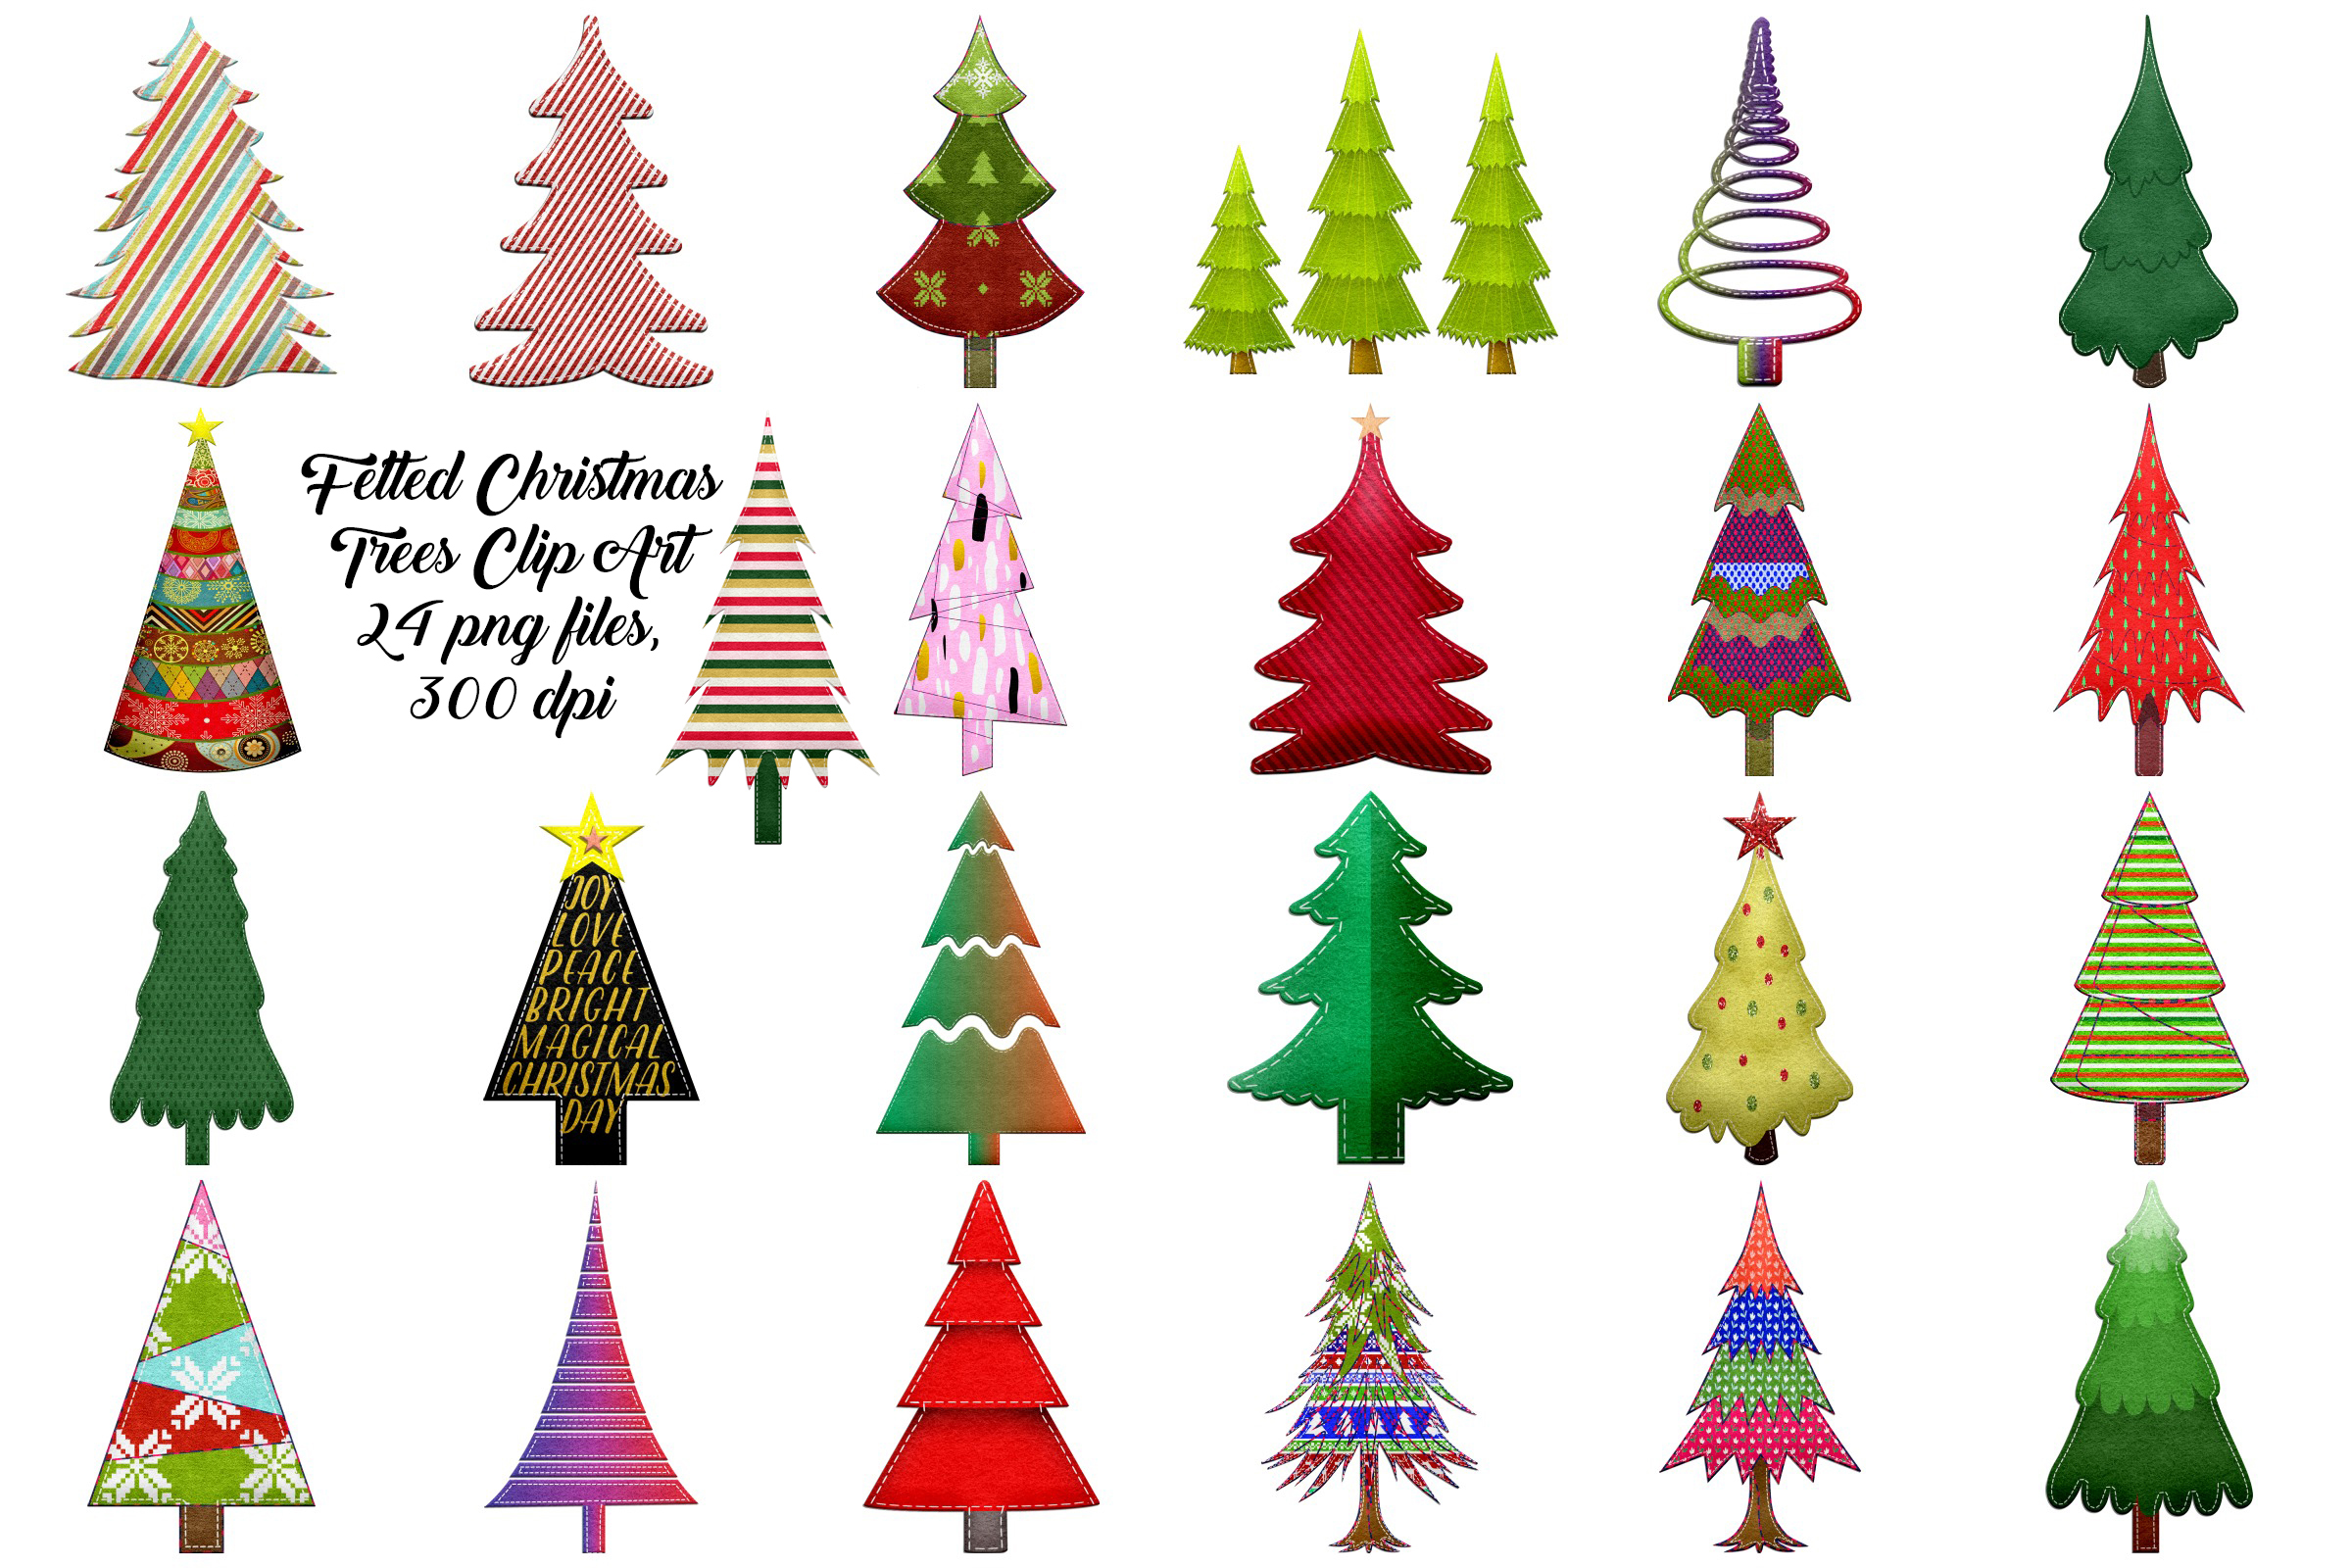 Christmas Felted Trees Clip Art example image 1